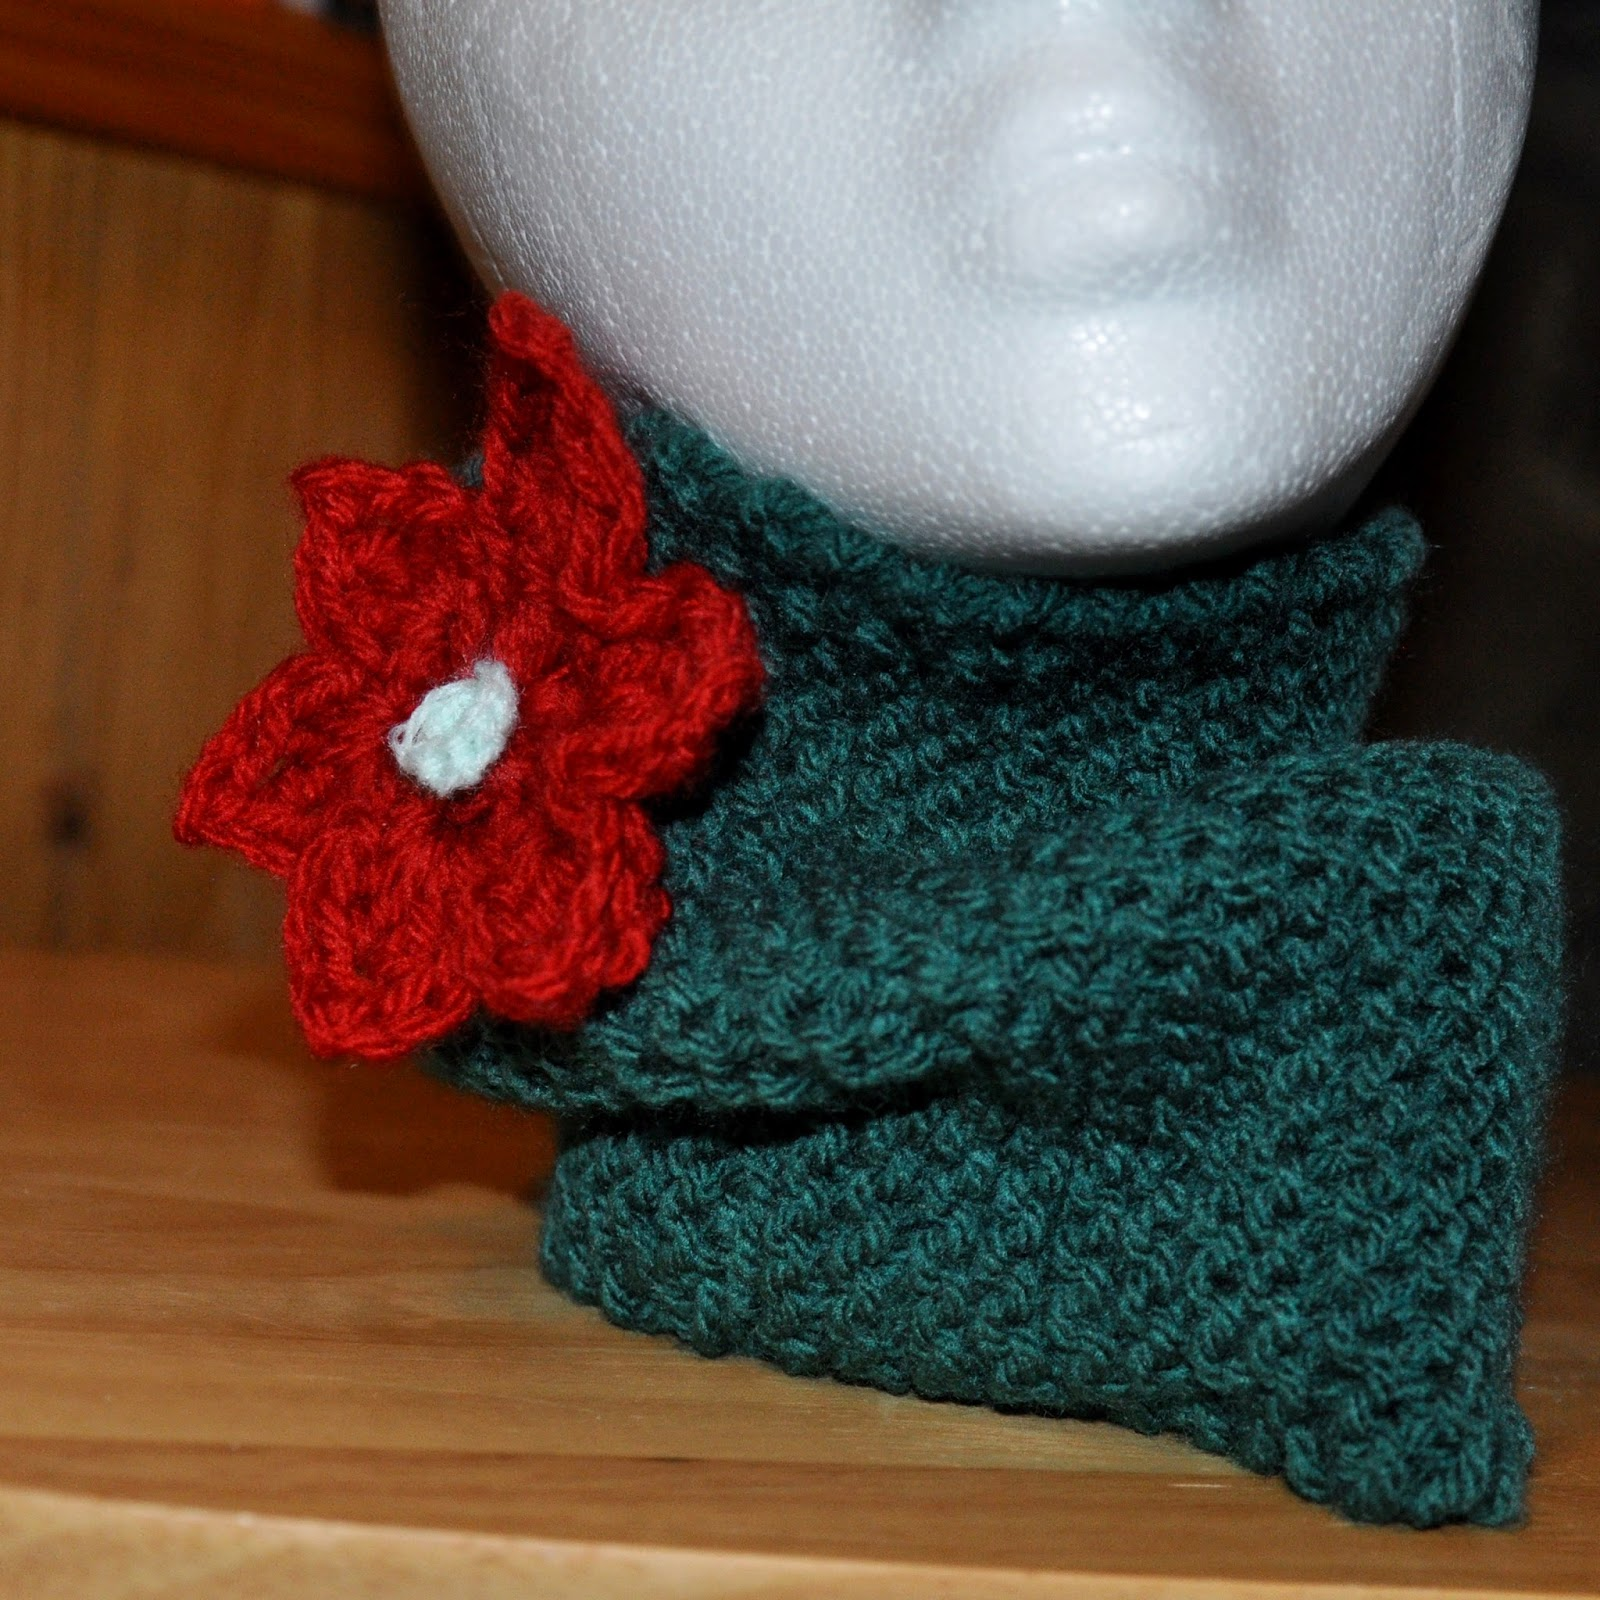 crochet neckwarmer with poinsettia flower